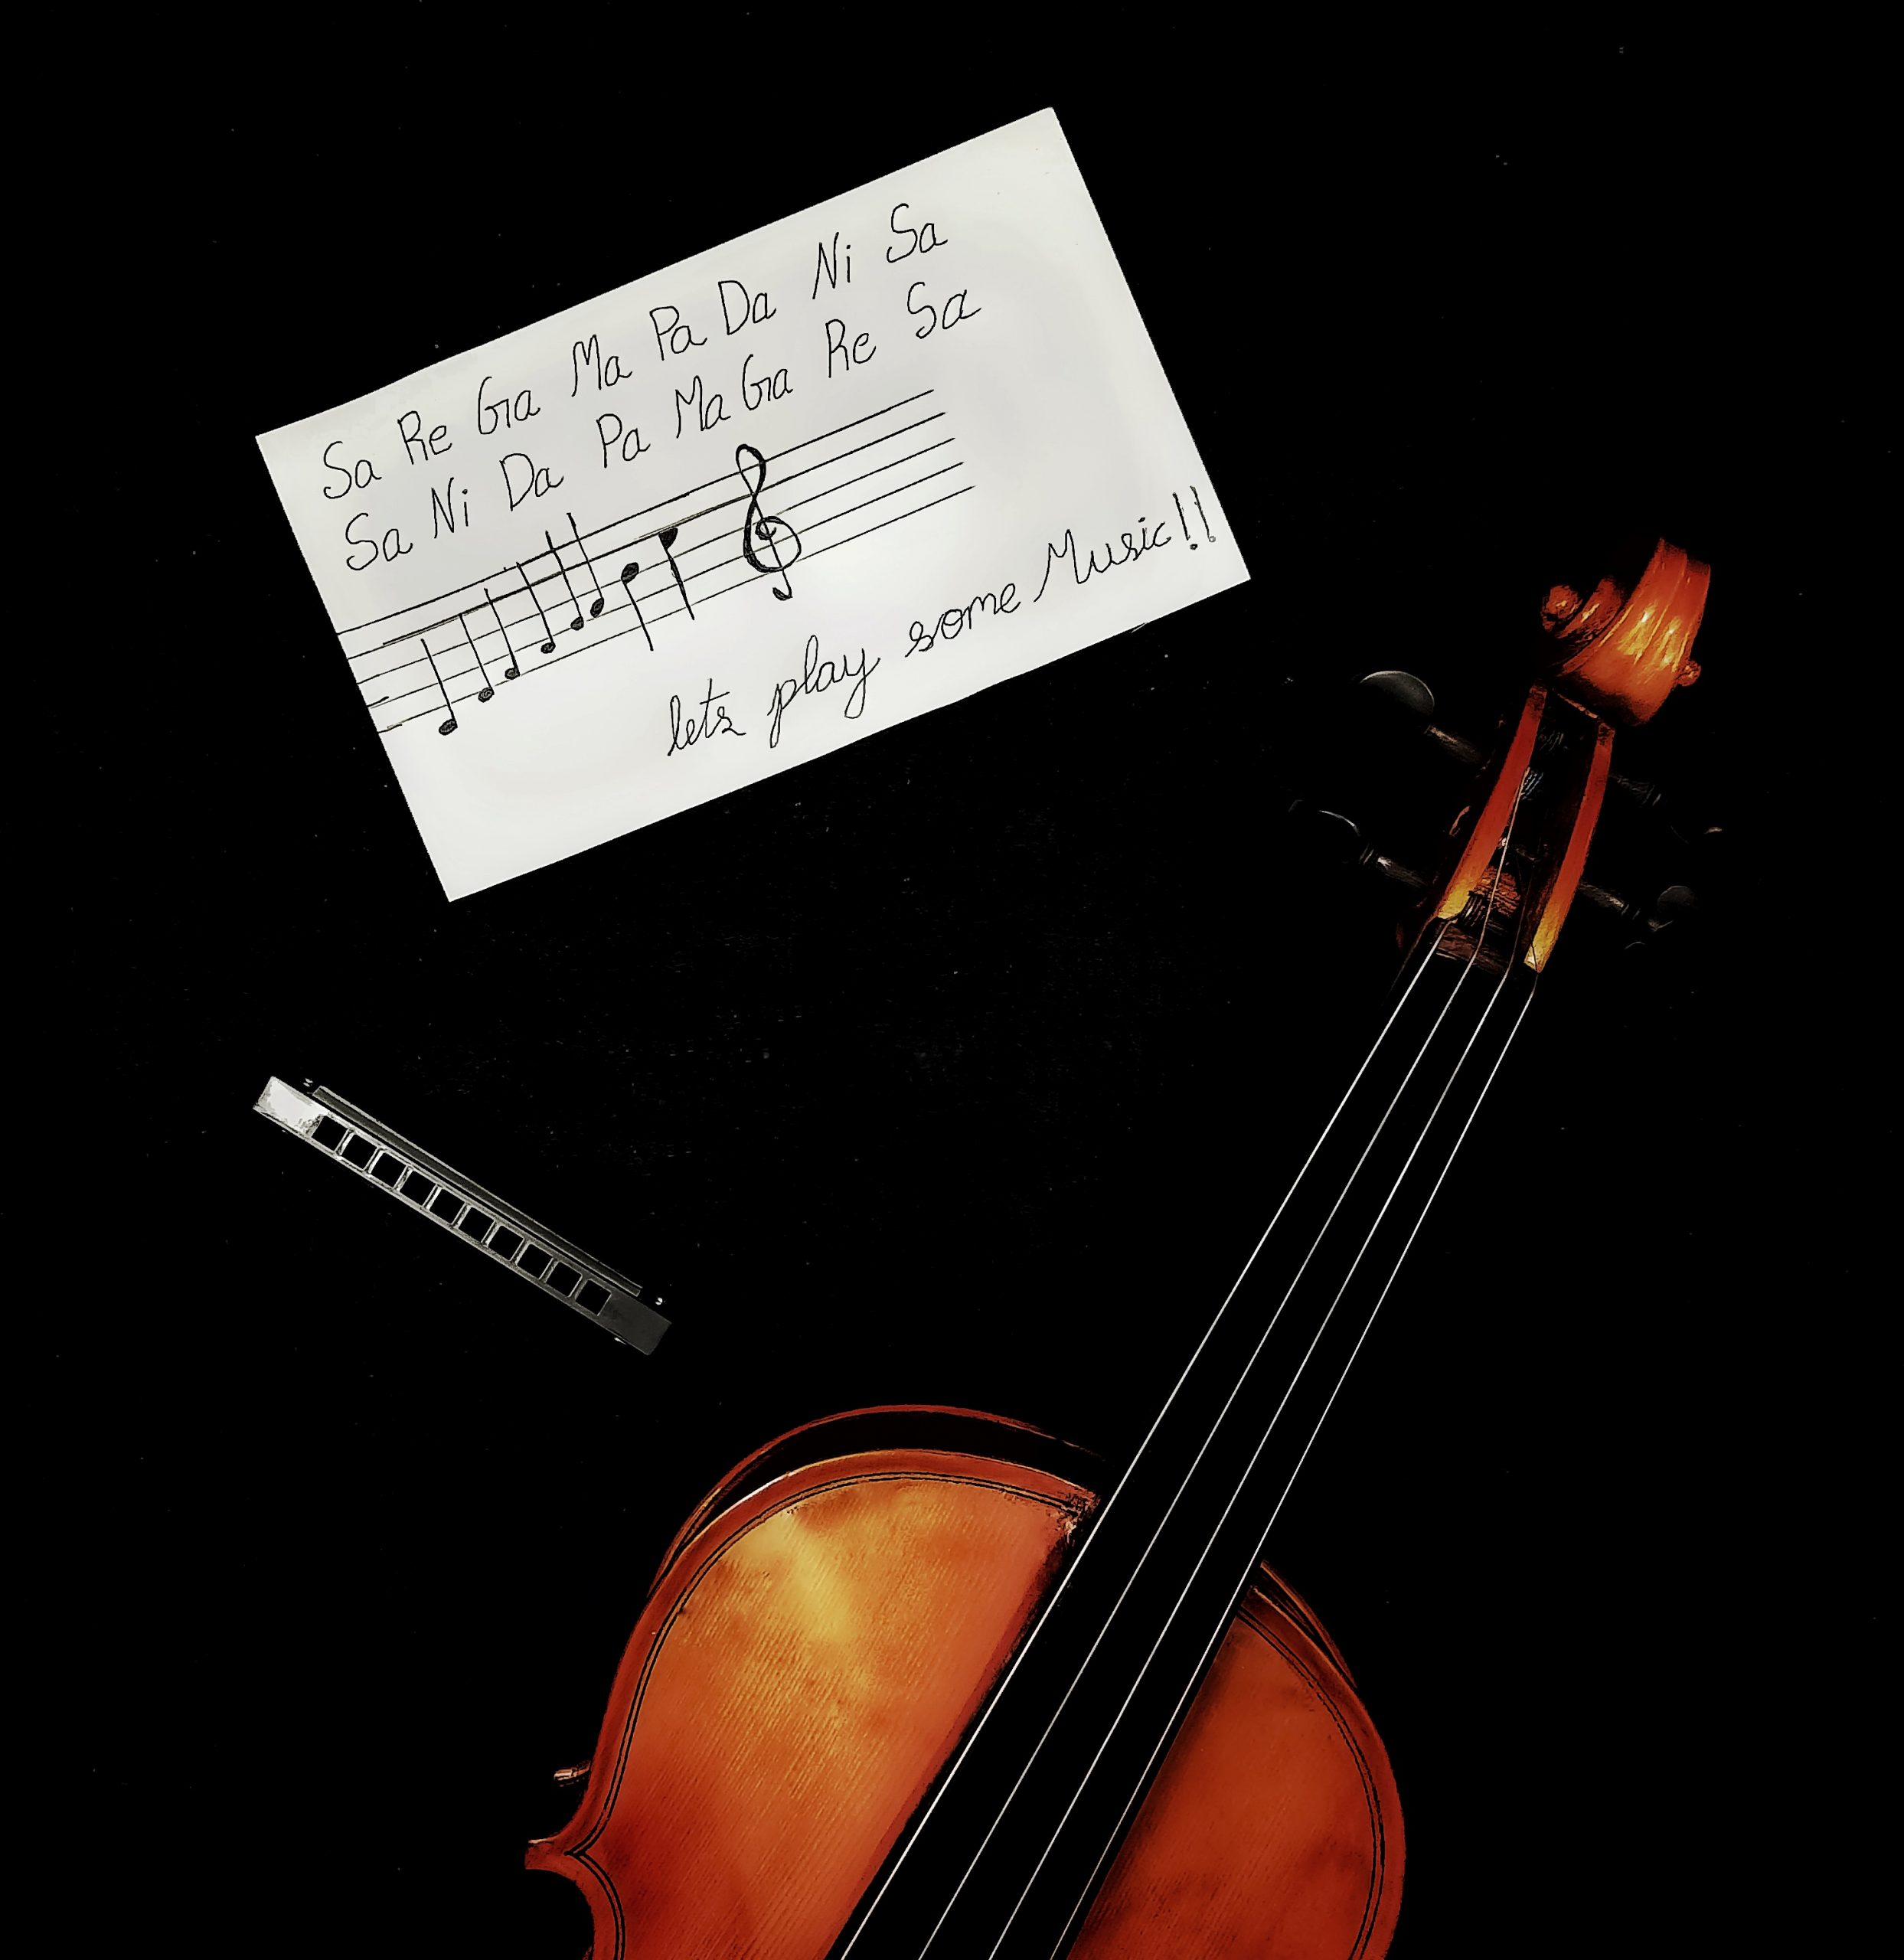 A violin with music notes